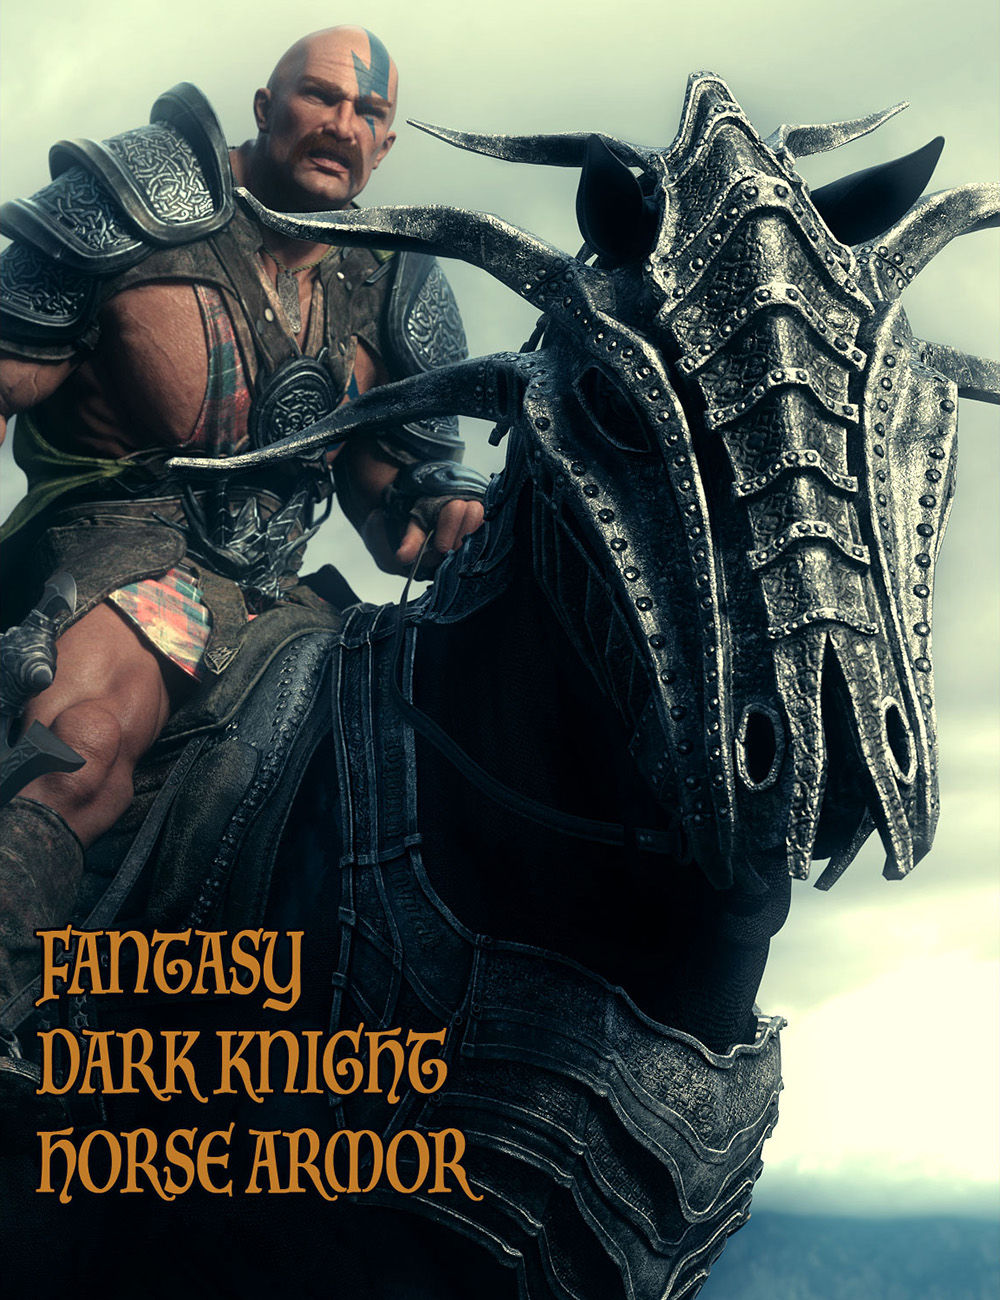 Fantasy Dark Knight Armor for DAZ Horse 2 by: Linday, 3D Models by Daz 3D